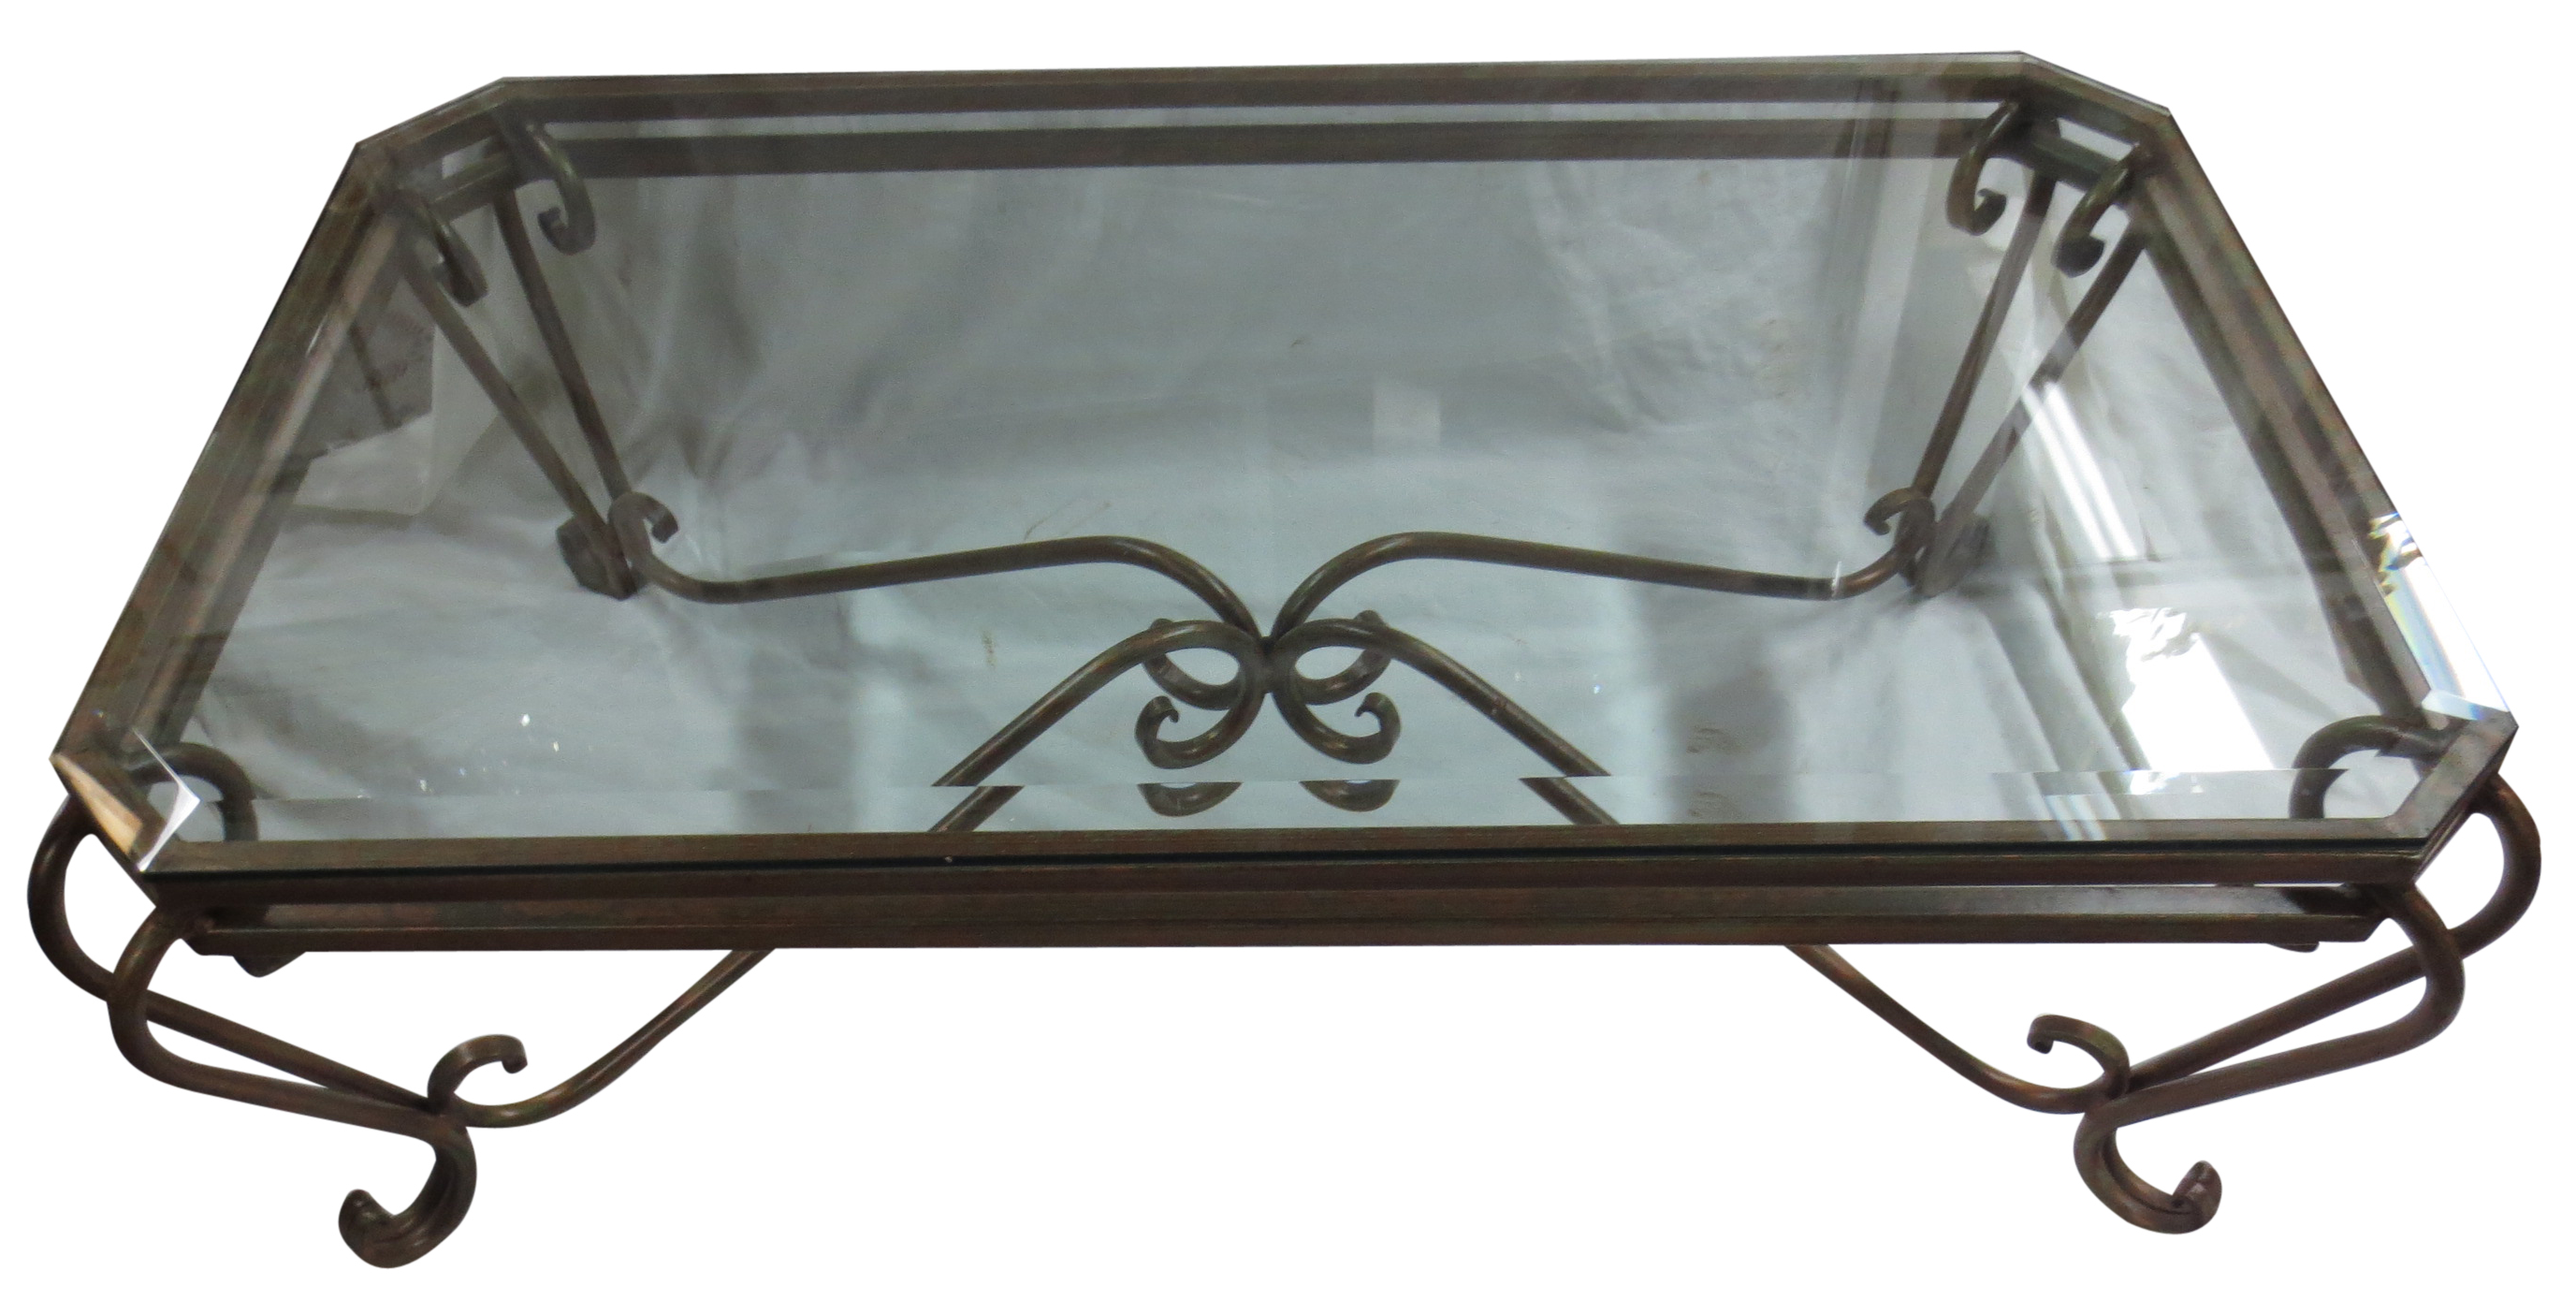 Hollywood Glam Wrought Iron and Glass Coffee Table